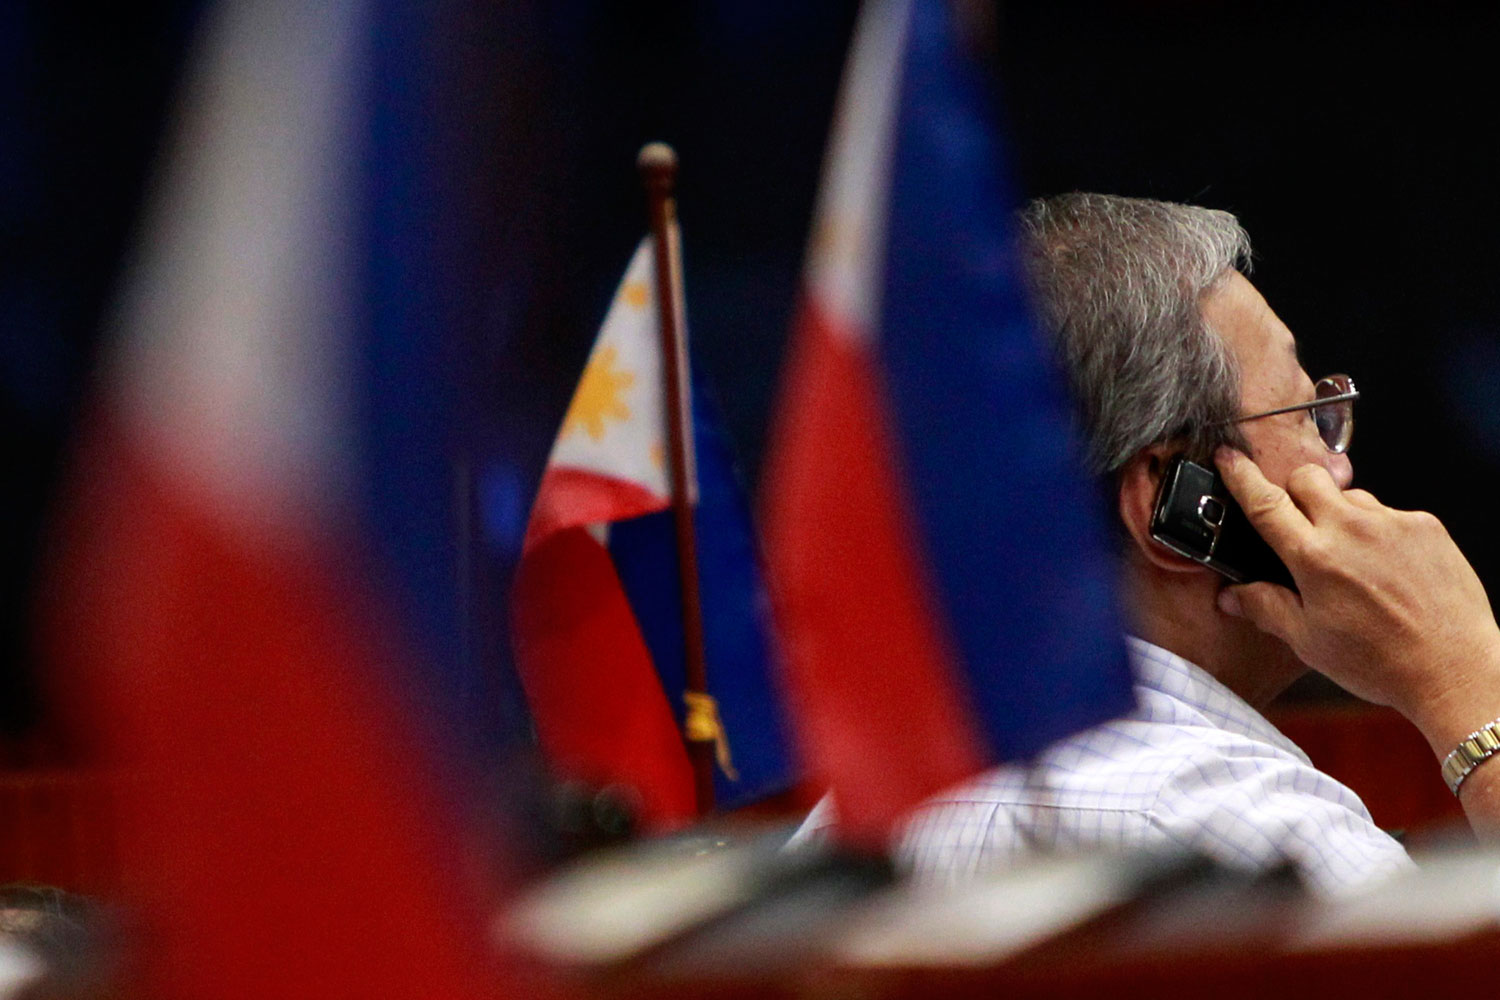 A trader talks on his mobile phone next to miniature Philippine flags during trading at the Philippine Stock Exchange in Manila's Makati financial district, August 5, 2011. The Philippine Stock Exchangeís main index fell more than 2 percent on Friday before paring losses to close down 1.4 percent. World stock markets fell for the eighth straight session on Friday to the lowest since late 2010, with more losses feared if policymakers do not come to the rescue soon to stabilise the euro zone's debt crisis and prevent the U.S. economy from sliding back into recession.